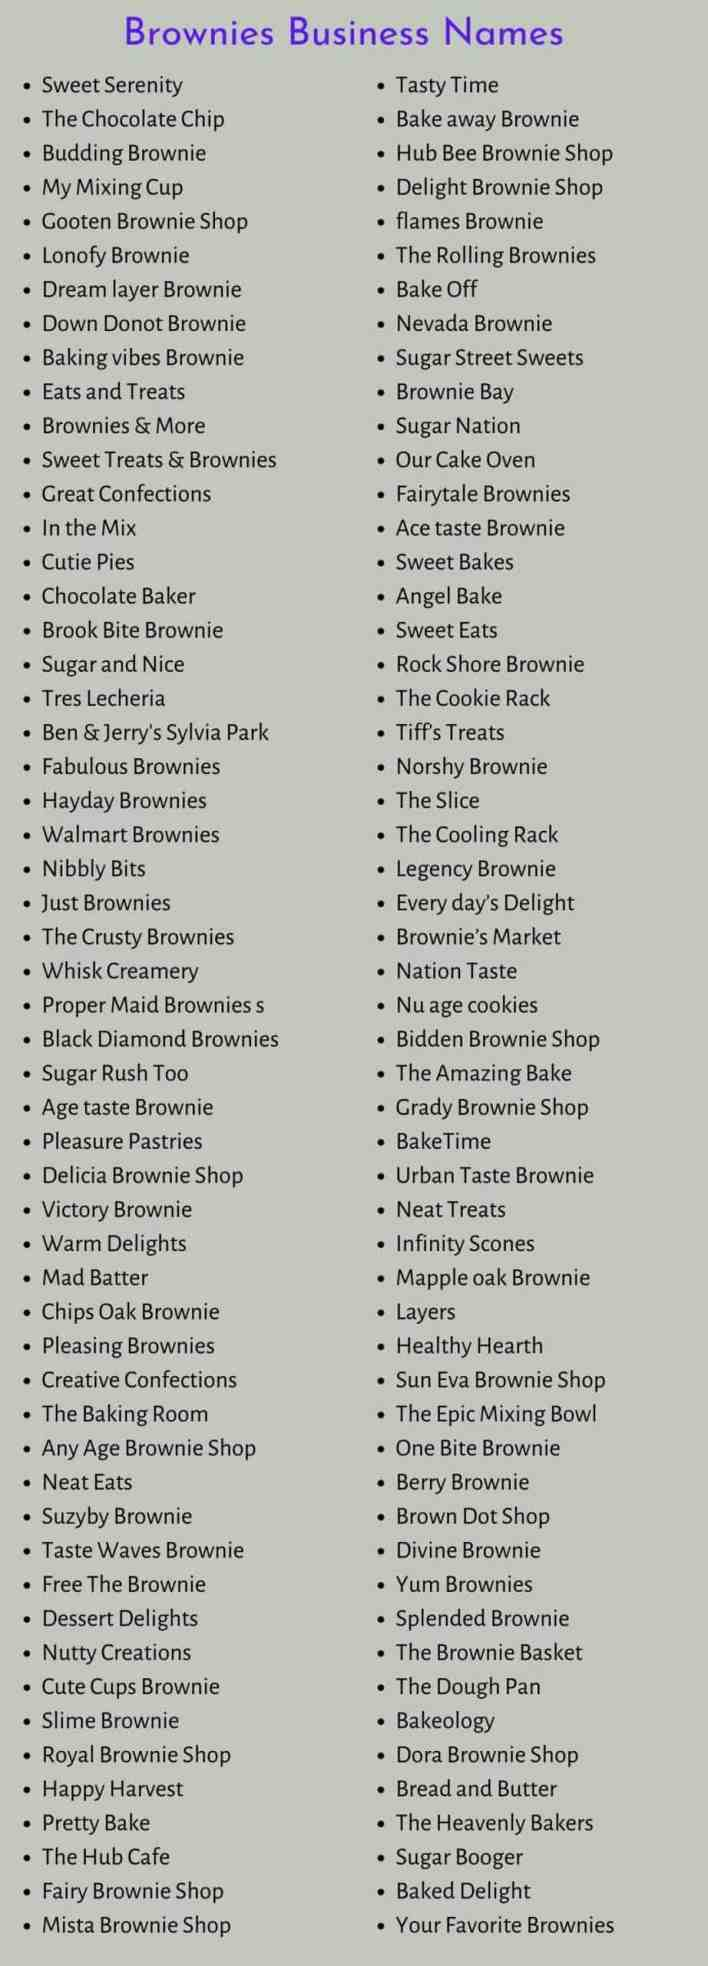 Names for Brownies